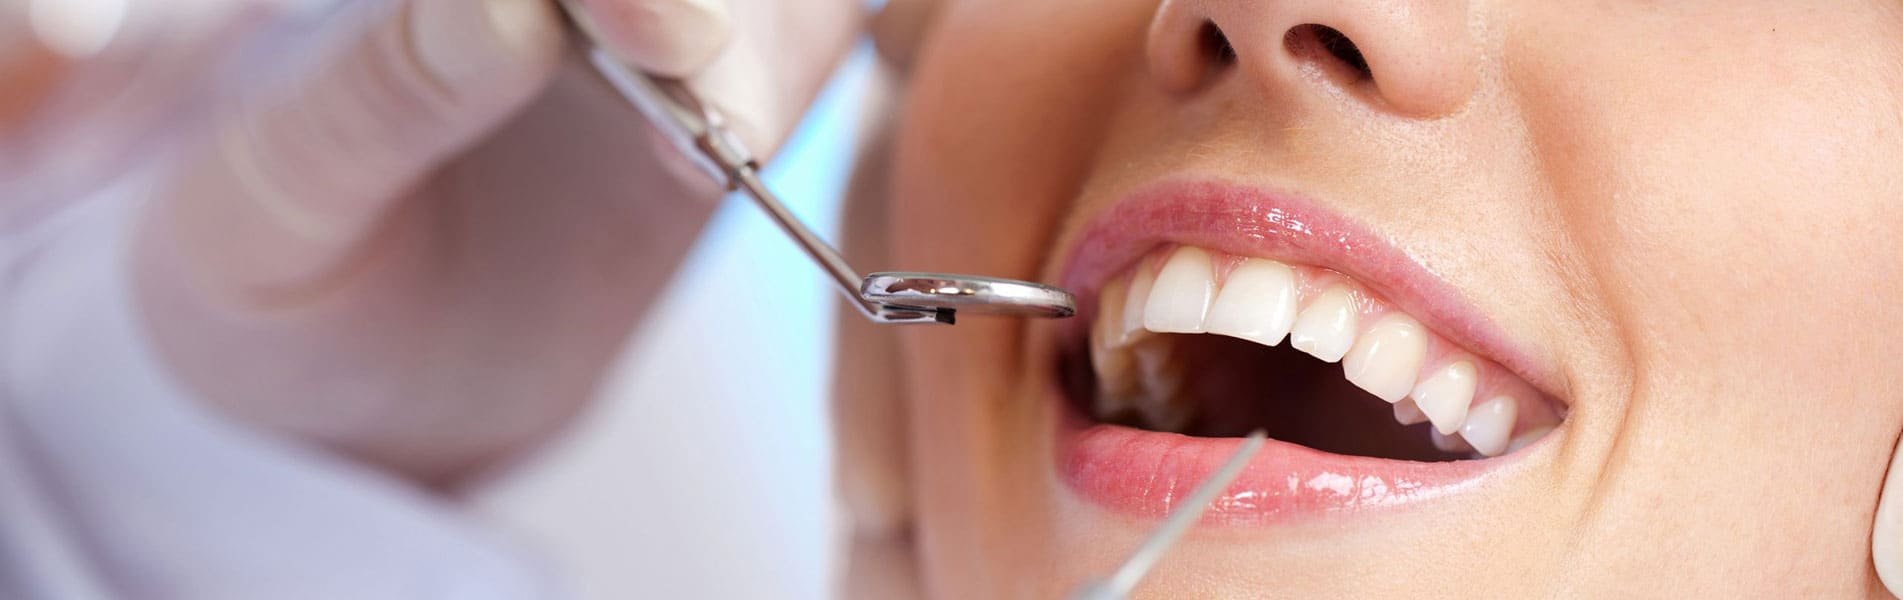 Dentists in Arlington VA